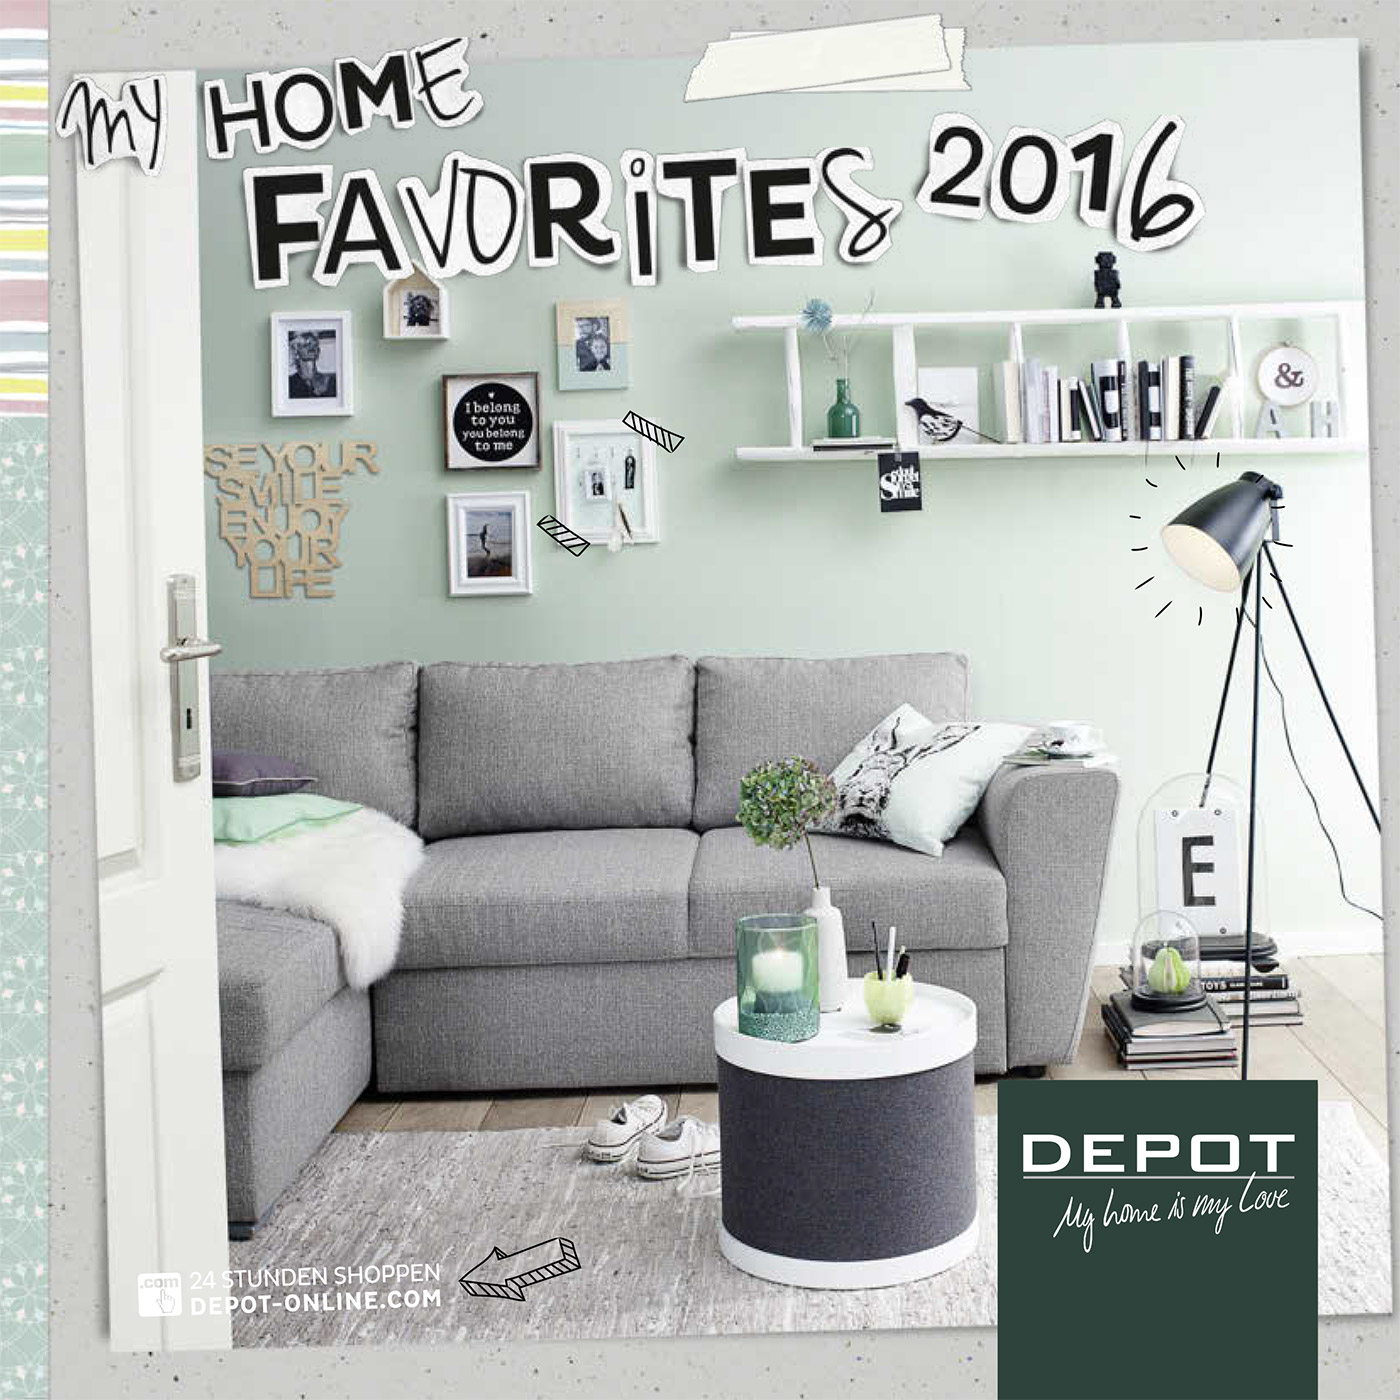 my home favorites der depot hauptkatalog 2016 sch n bei dir by depot. Black Bedroom Furniture Sets. Home Design Ideas